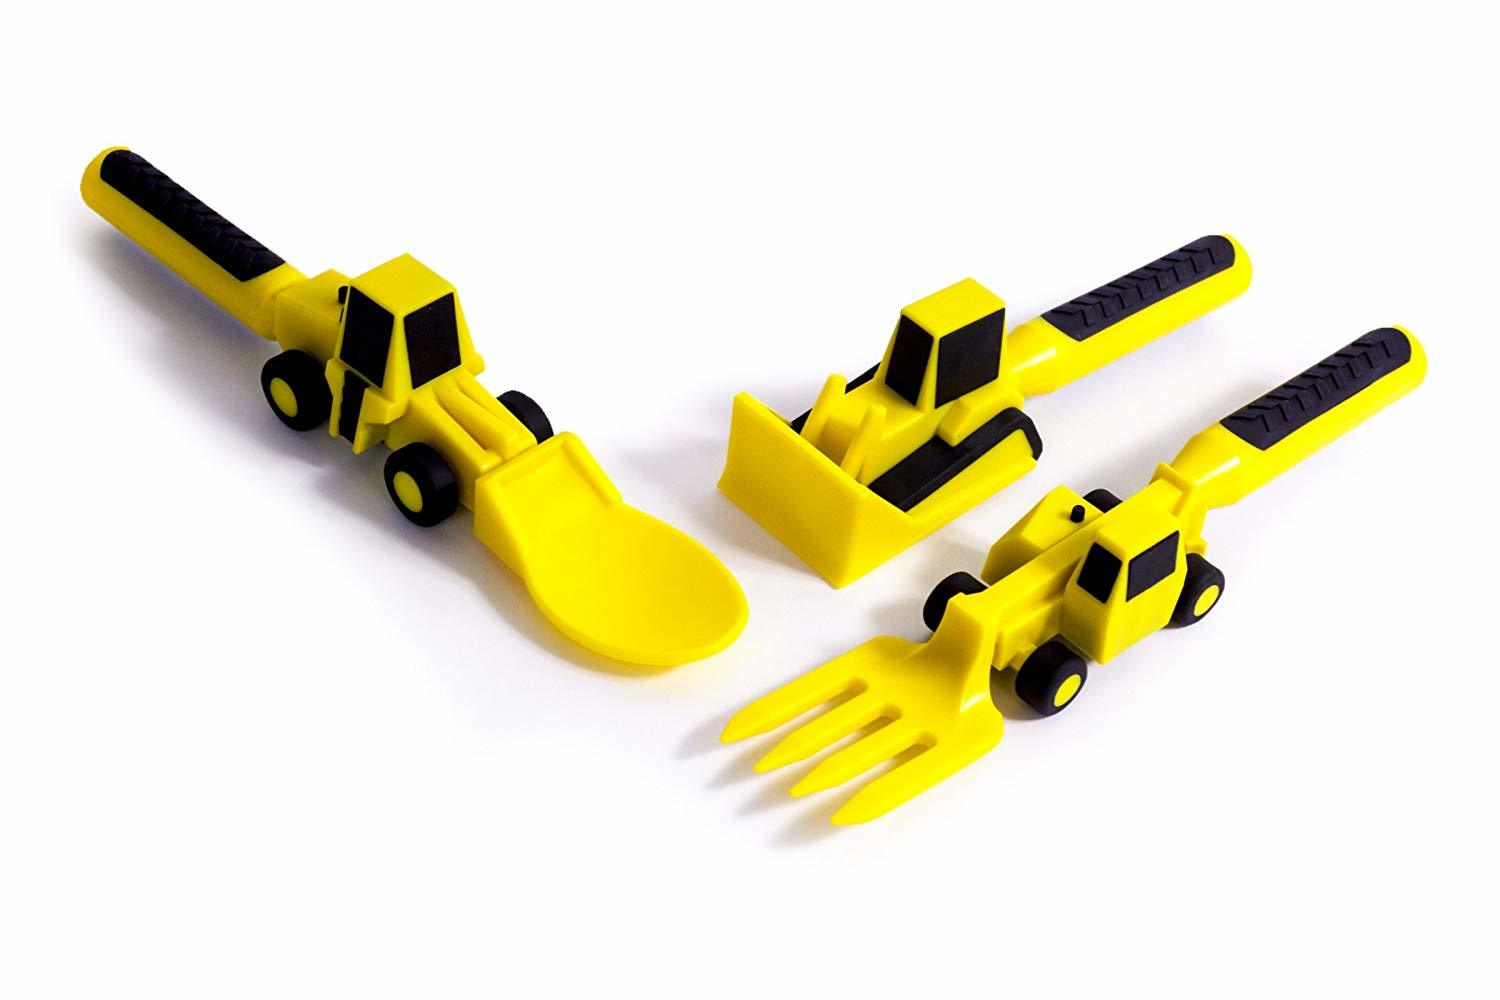 Constructive Eating - Construction Utensil Set image